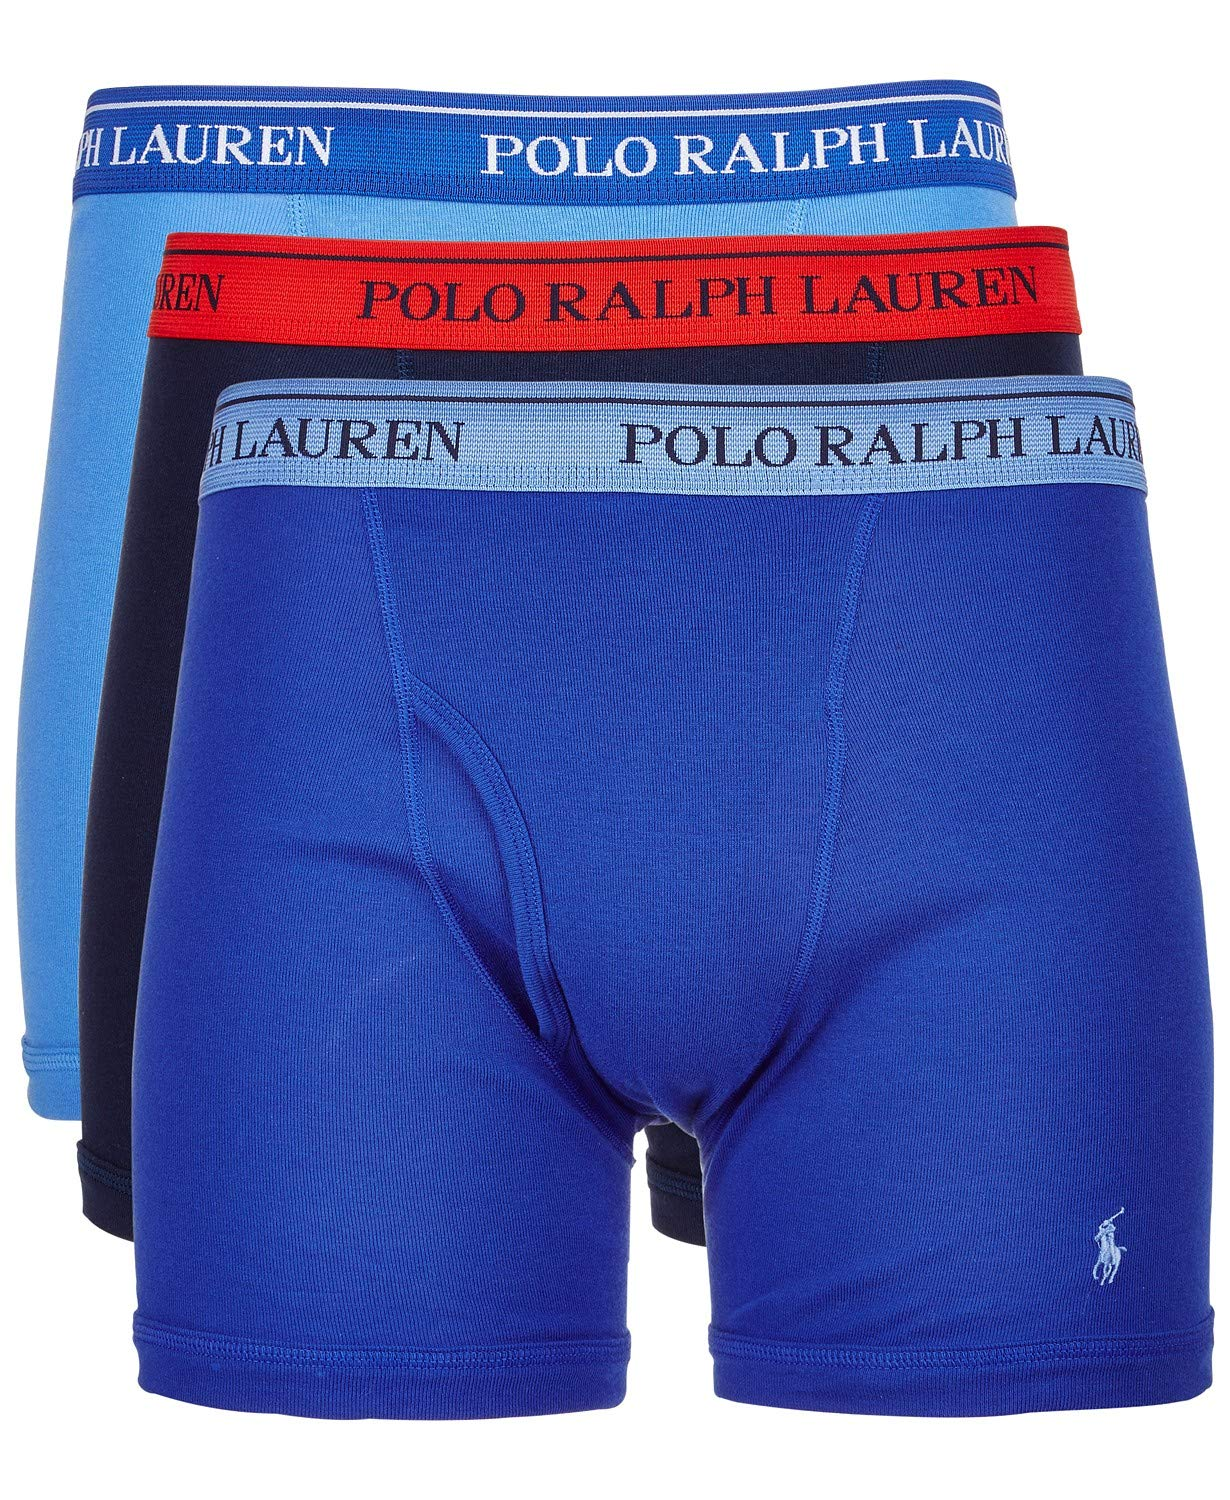 Polo Ralph Lauren Classic Fit Boxer Briefs with Moisture Wicking, 100% Cotton - 3 Pack (L, Aerial Blue)